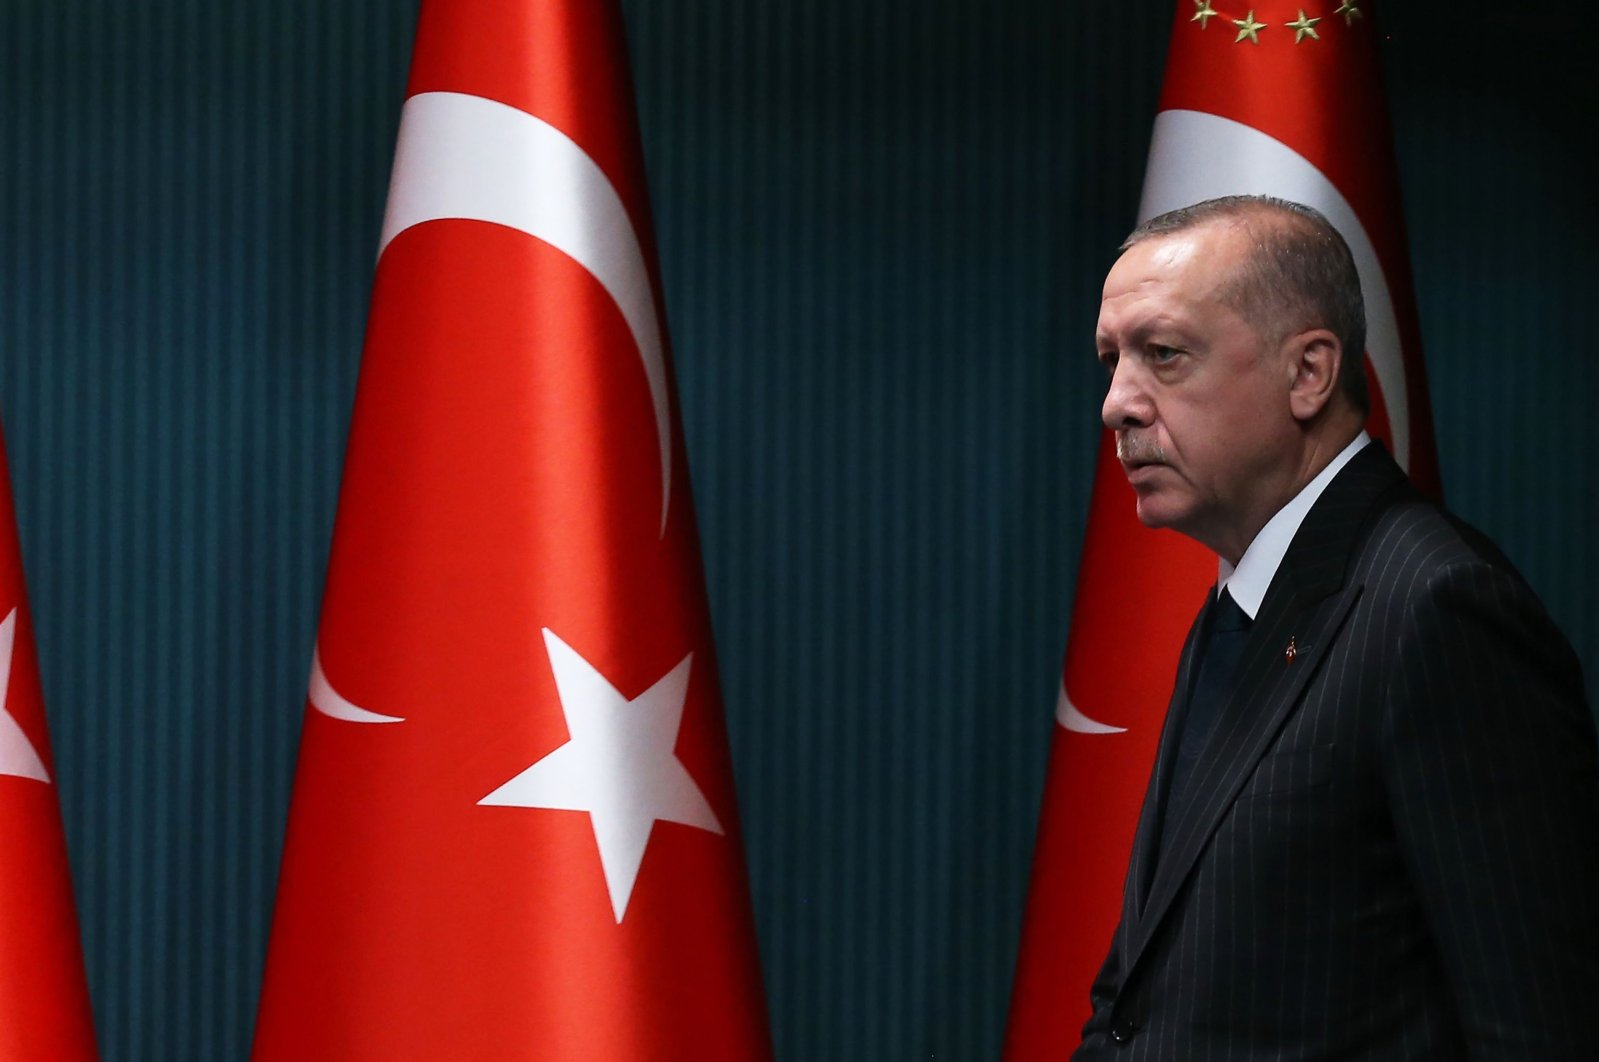 President Recep Tayyip Erdoğan arrives for a news conference following the weekly Cabinet meeting at the Presidential Complex in Ankara, Turkey, Aug. 24, 2020. (AFP Photo)